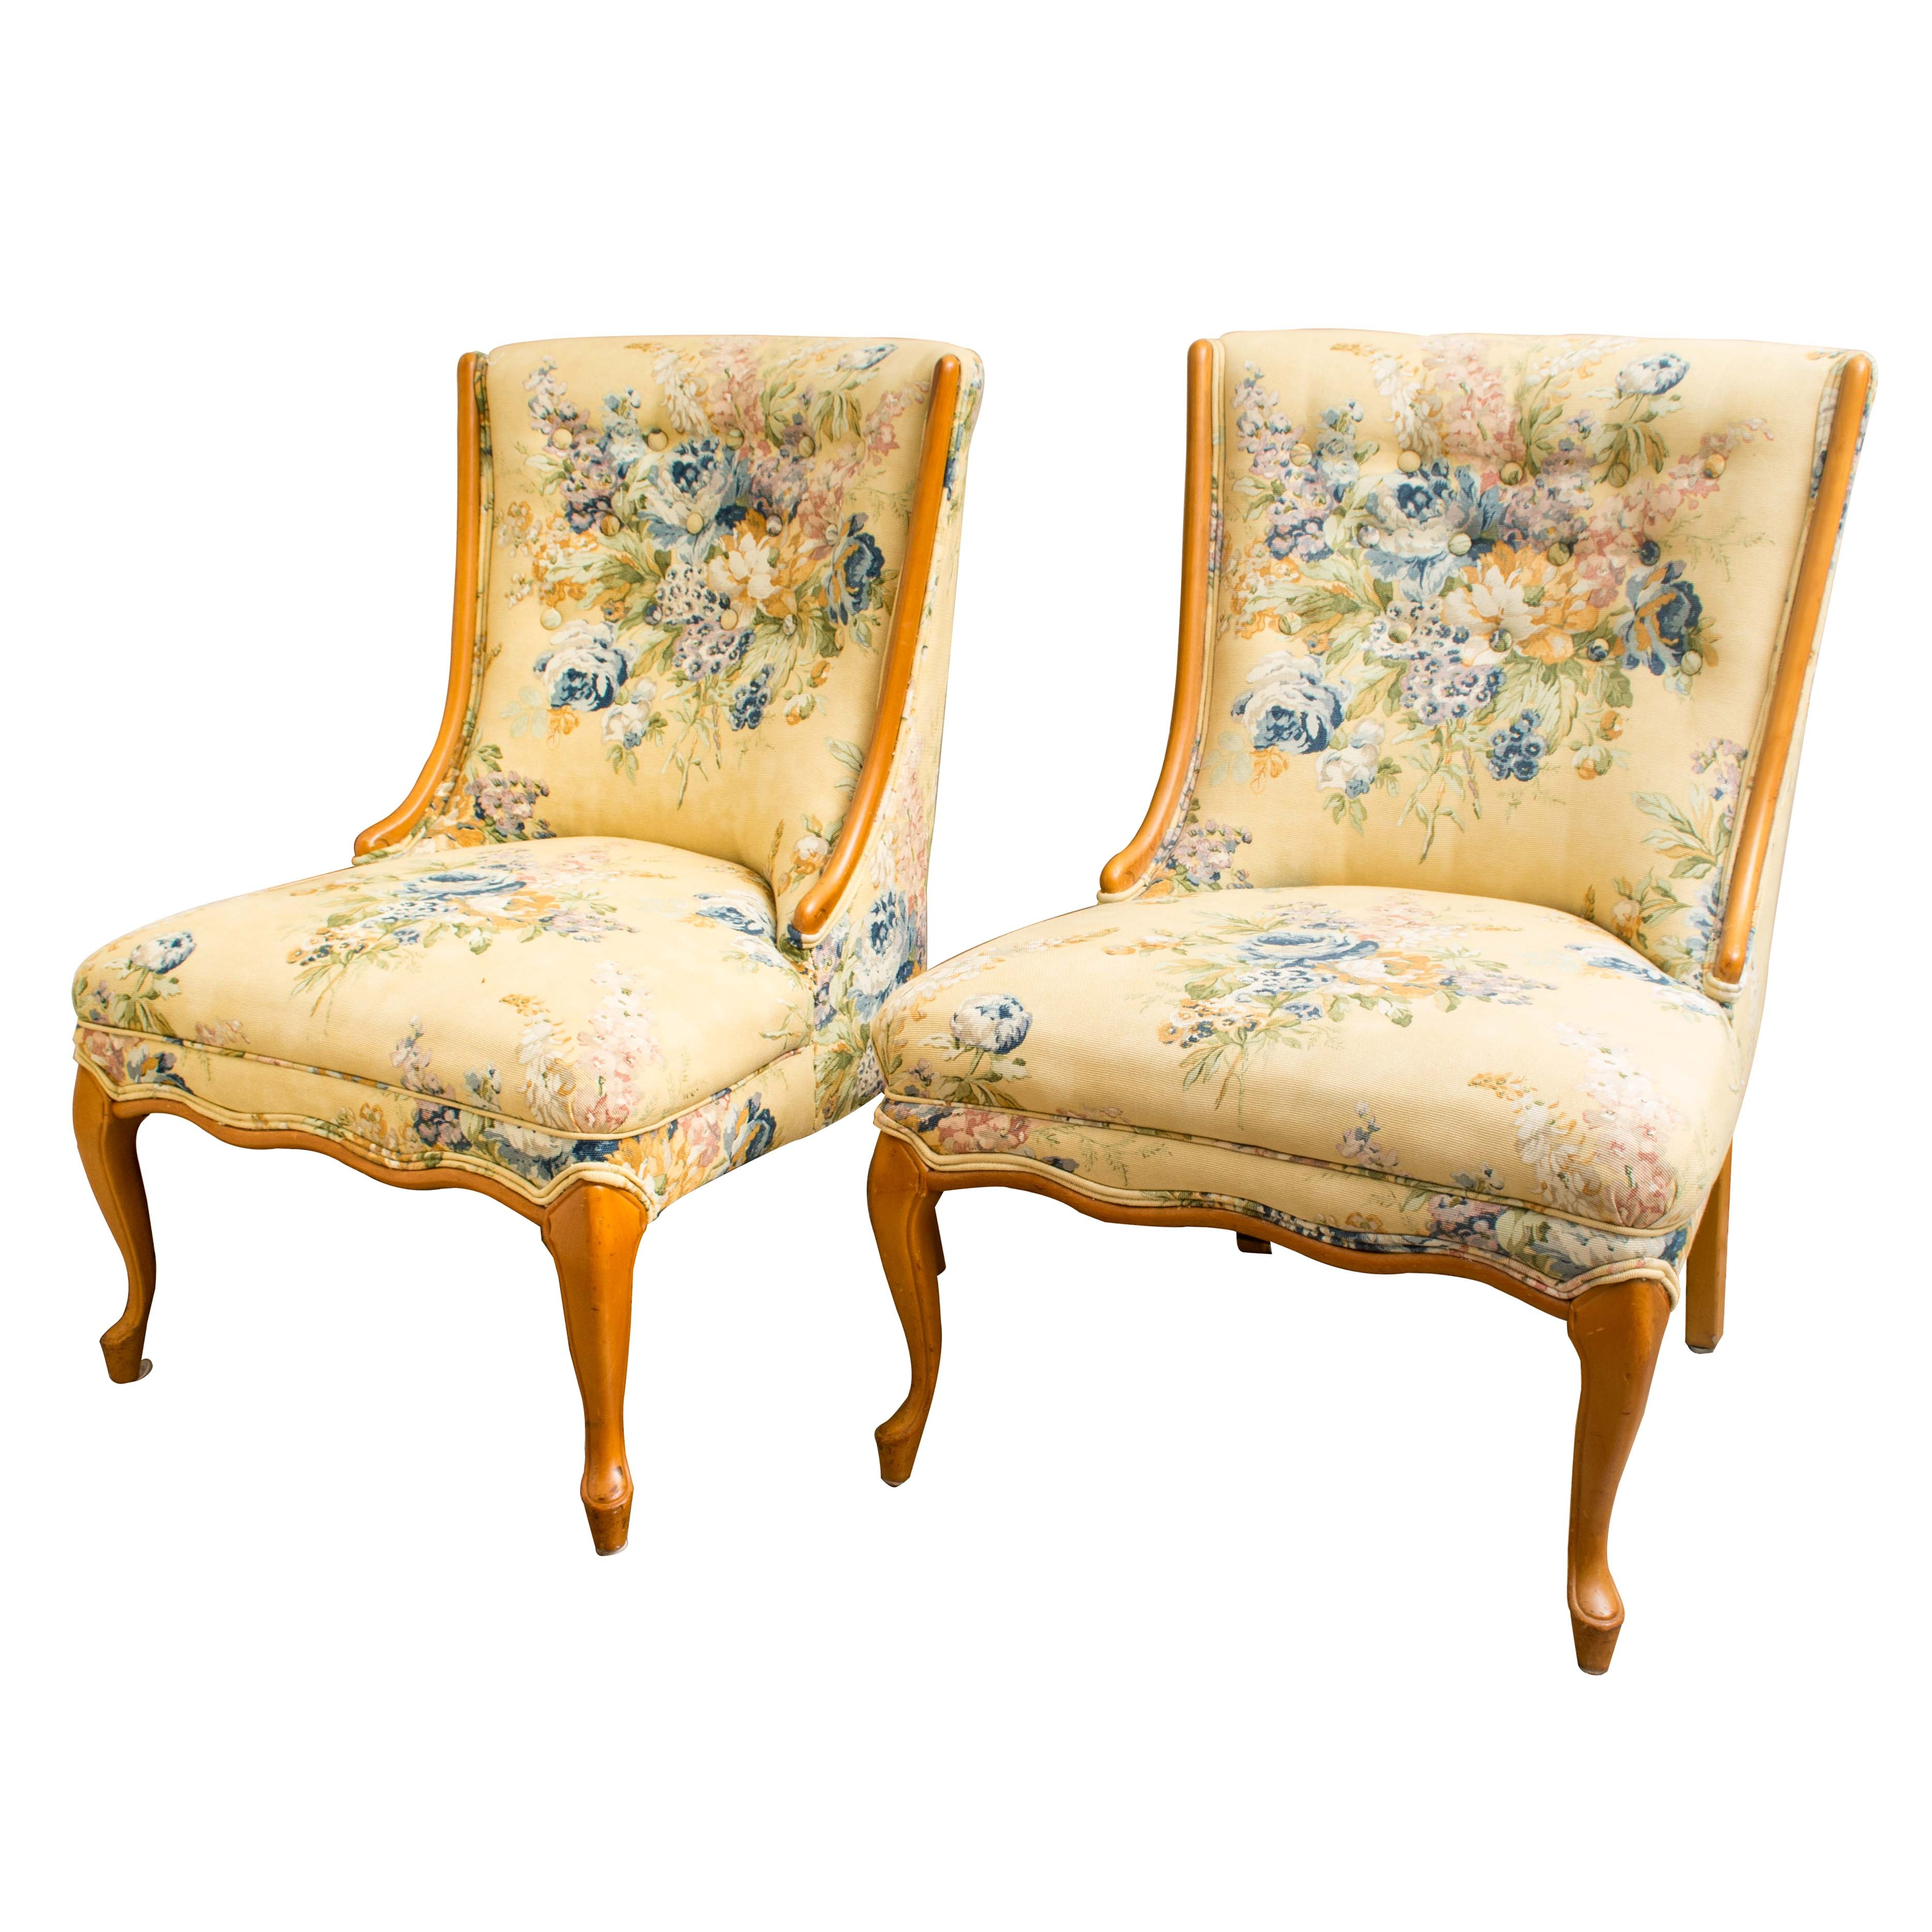 Pair of French Provincial Style Upholstered Side Chairs